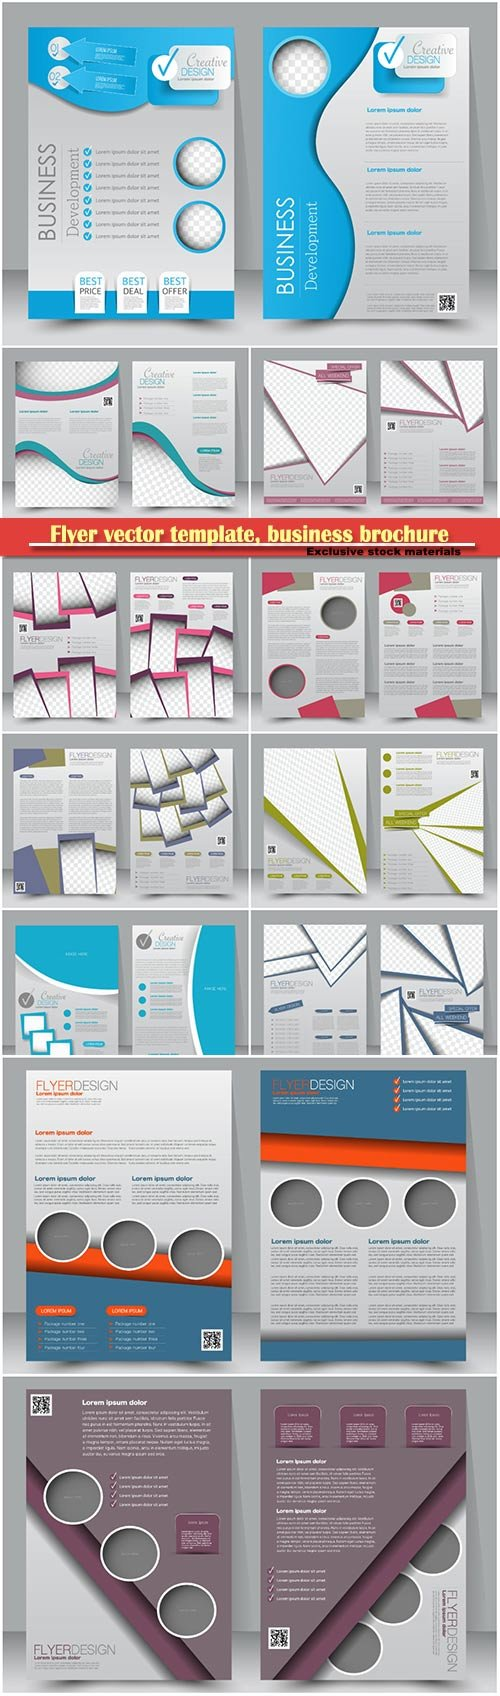 Flyer vector template, business brochure, magazine cover # 12